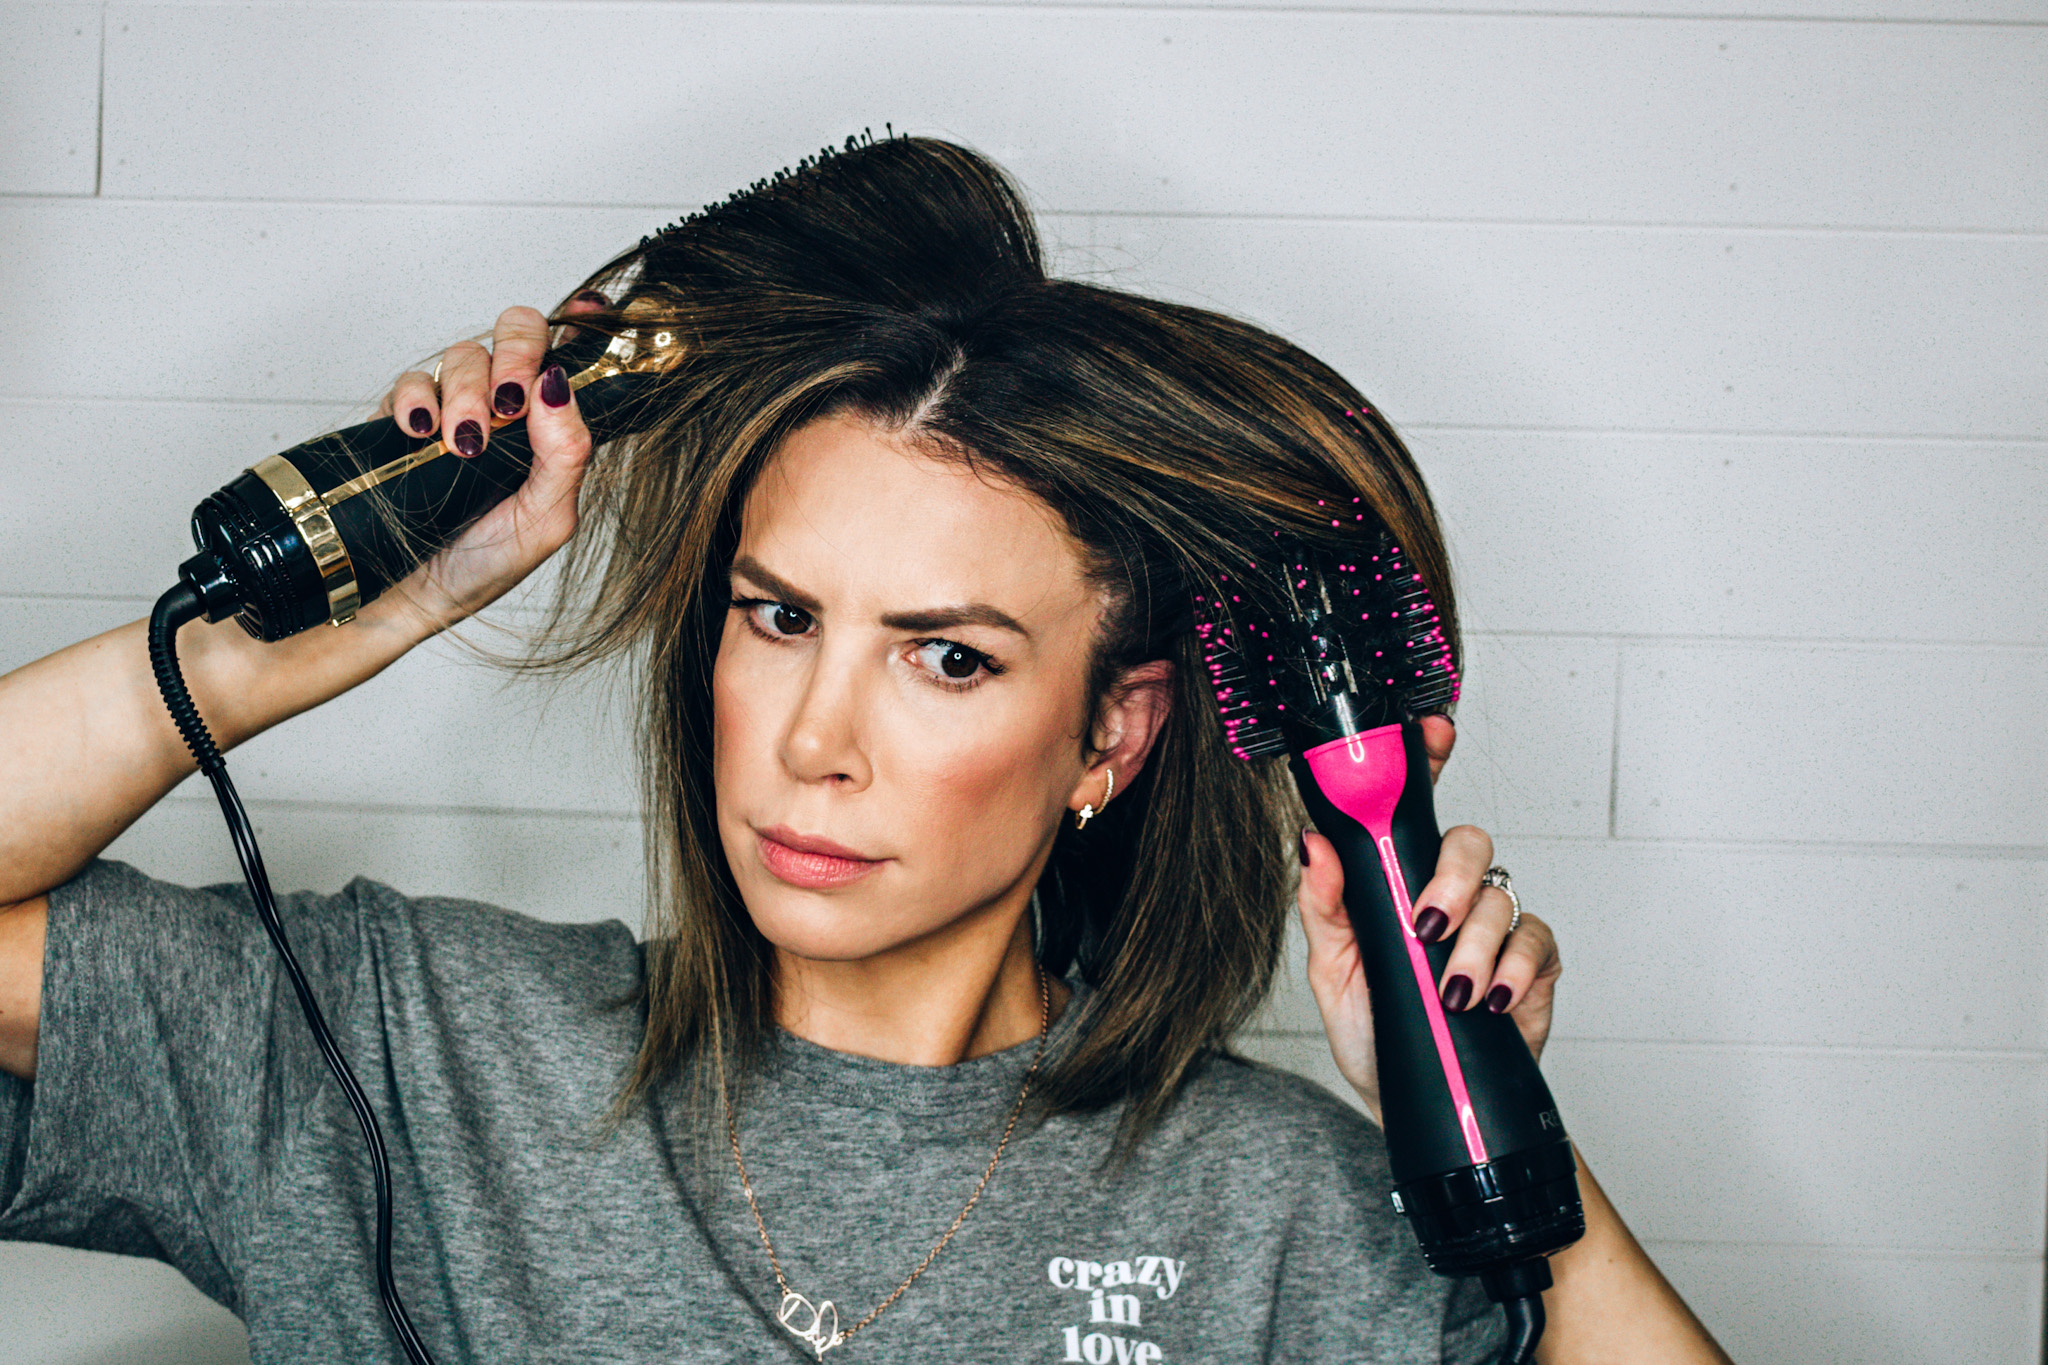 revlon vs hot tools hair dryer